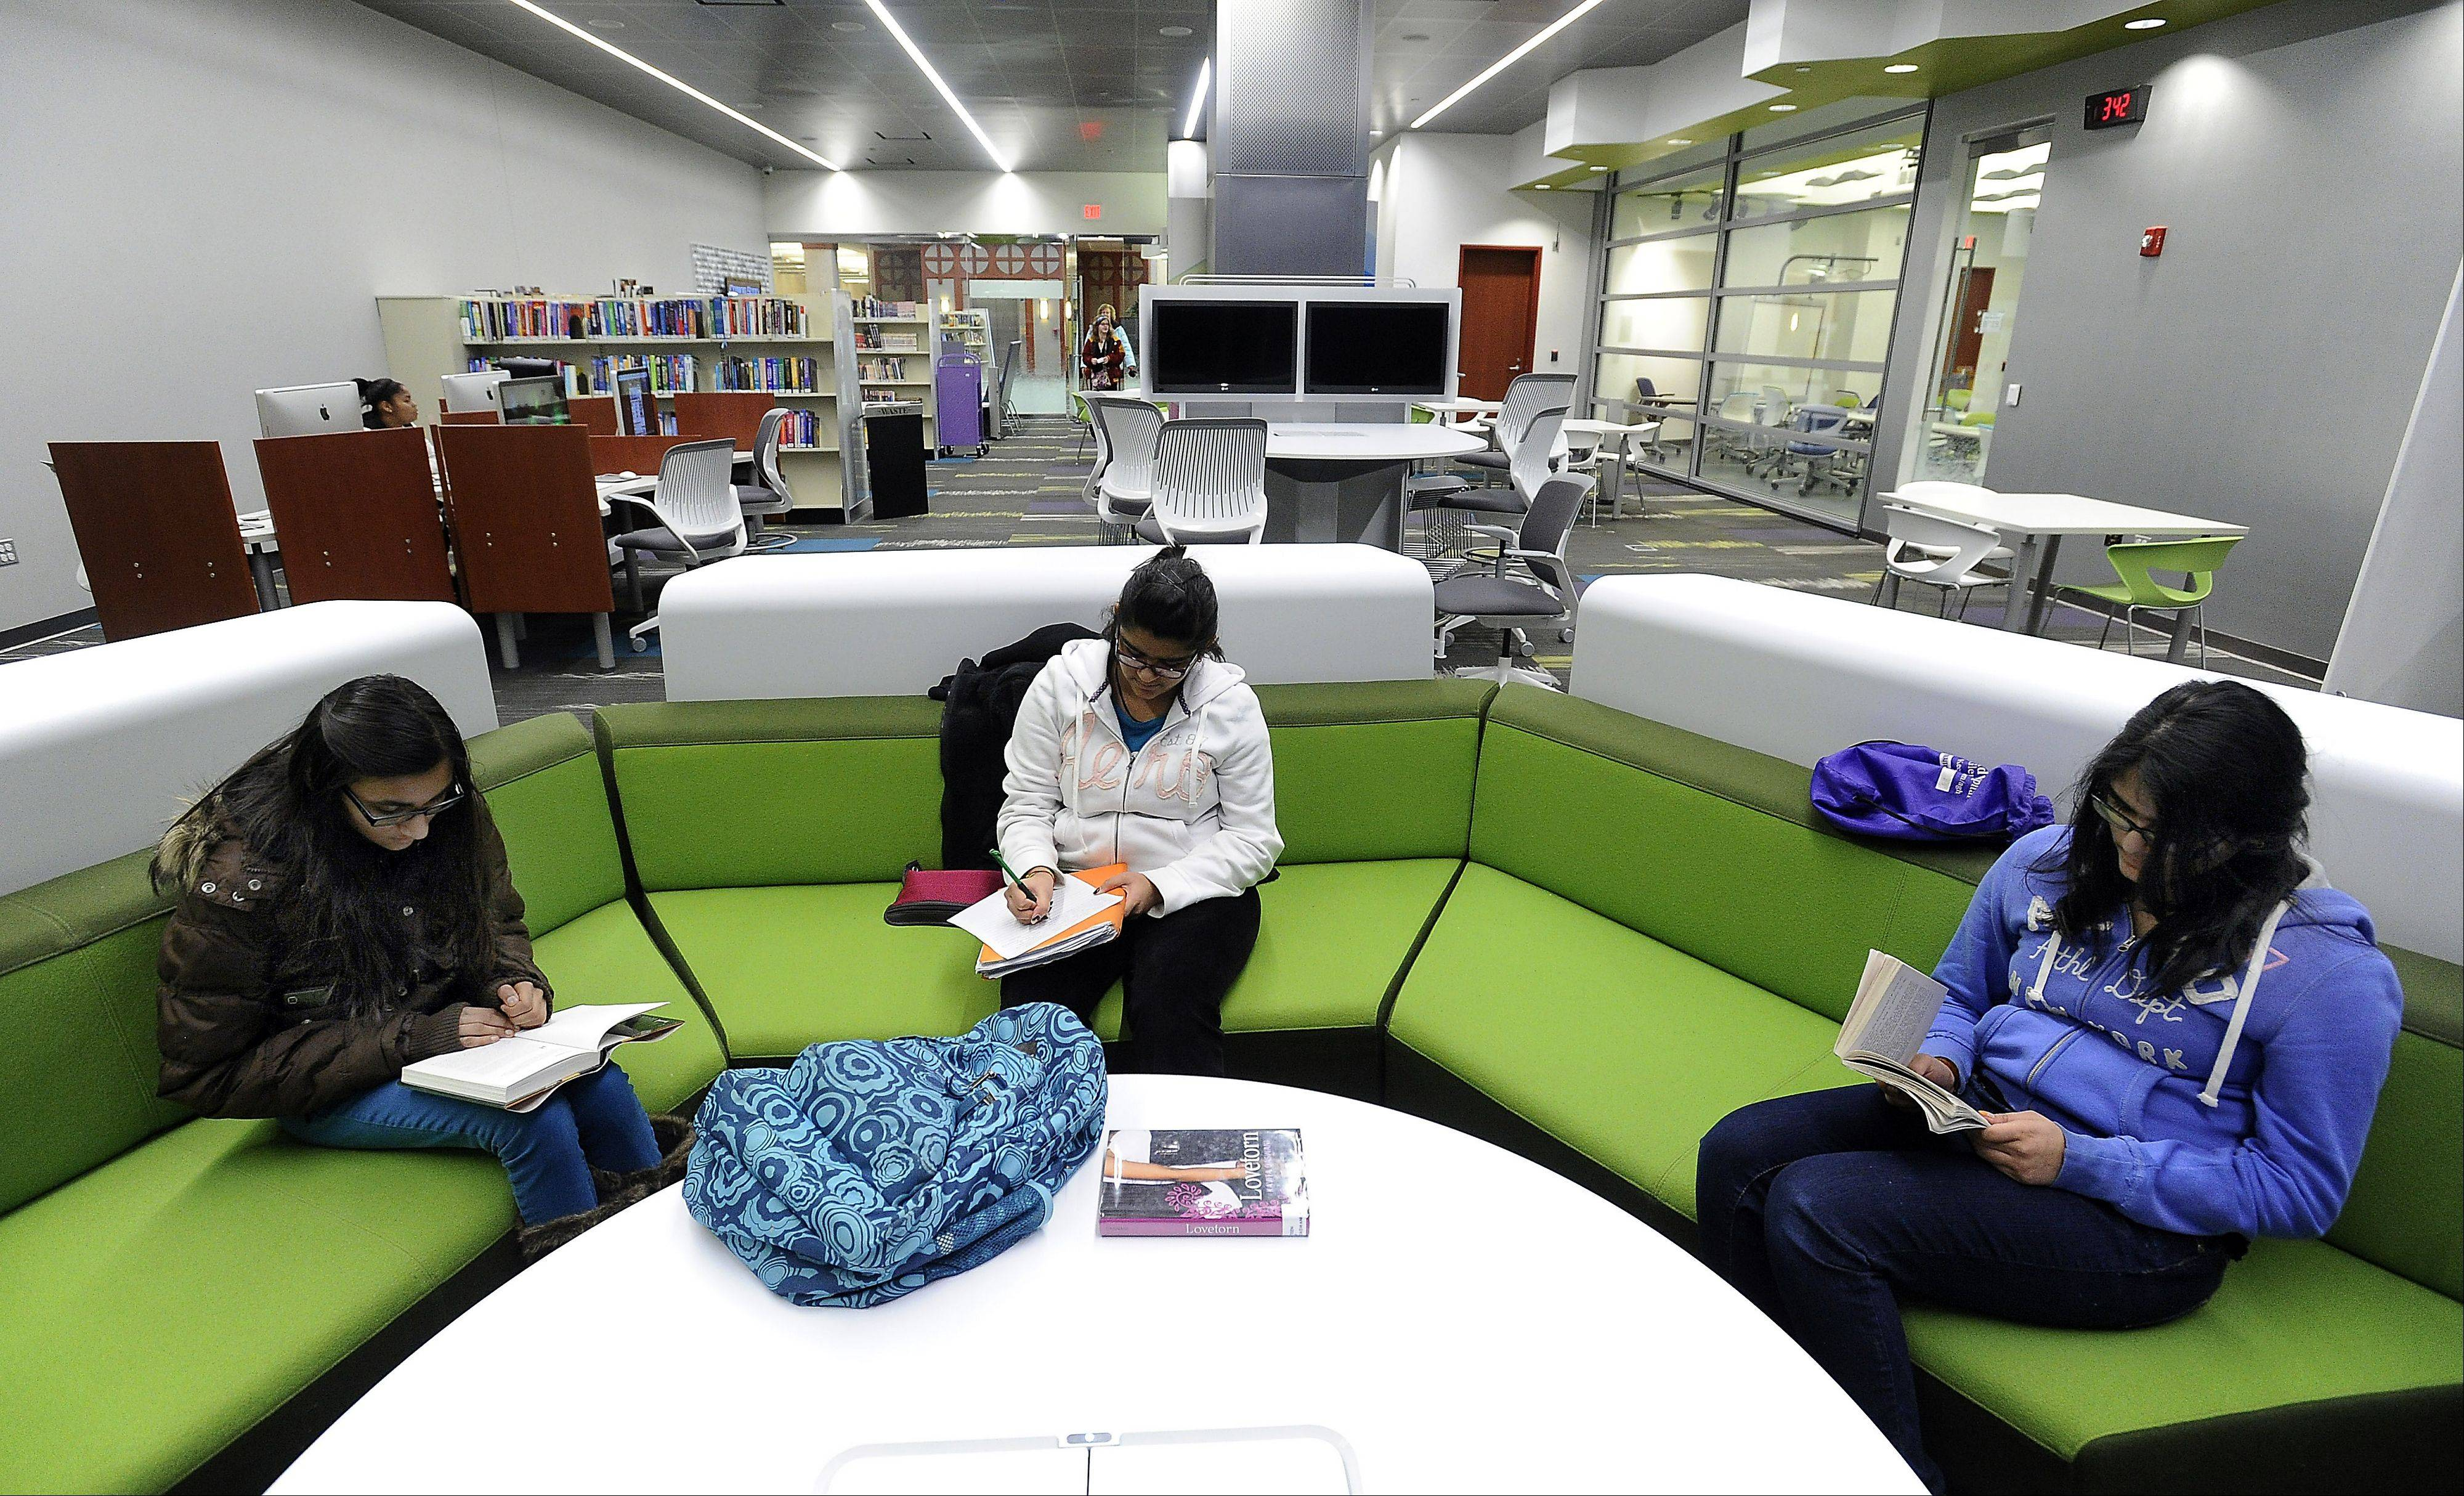 Puja, 13, Toral, 14, and Komal Patel, 12, like to read in the new teen center at the Schaumburg Township District Library.